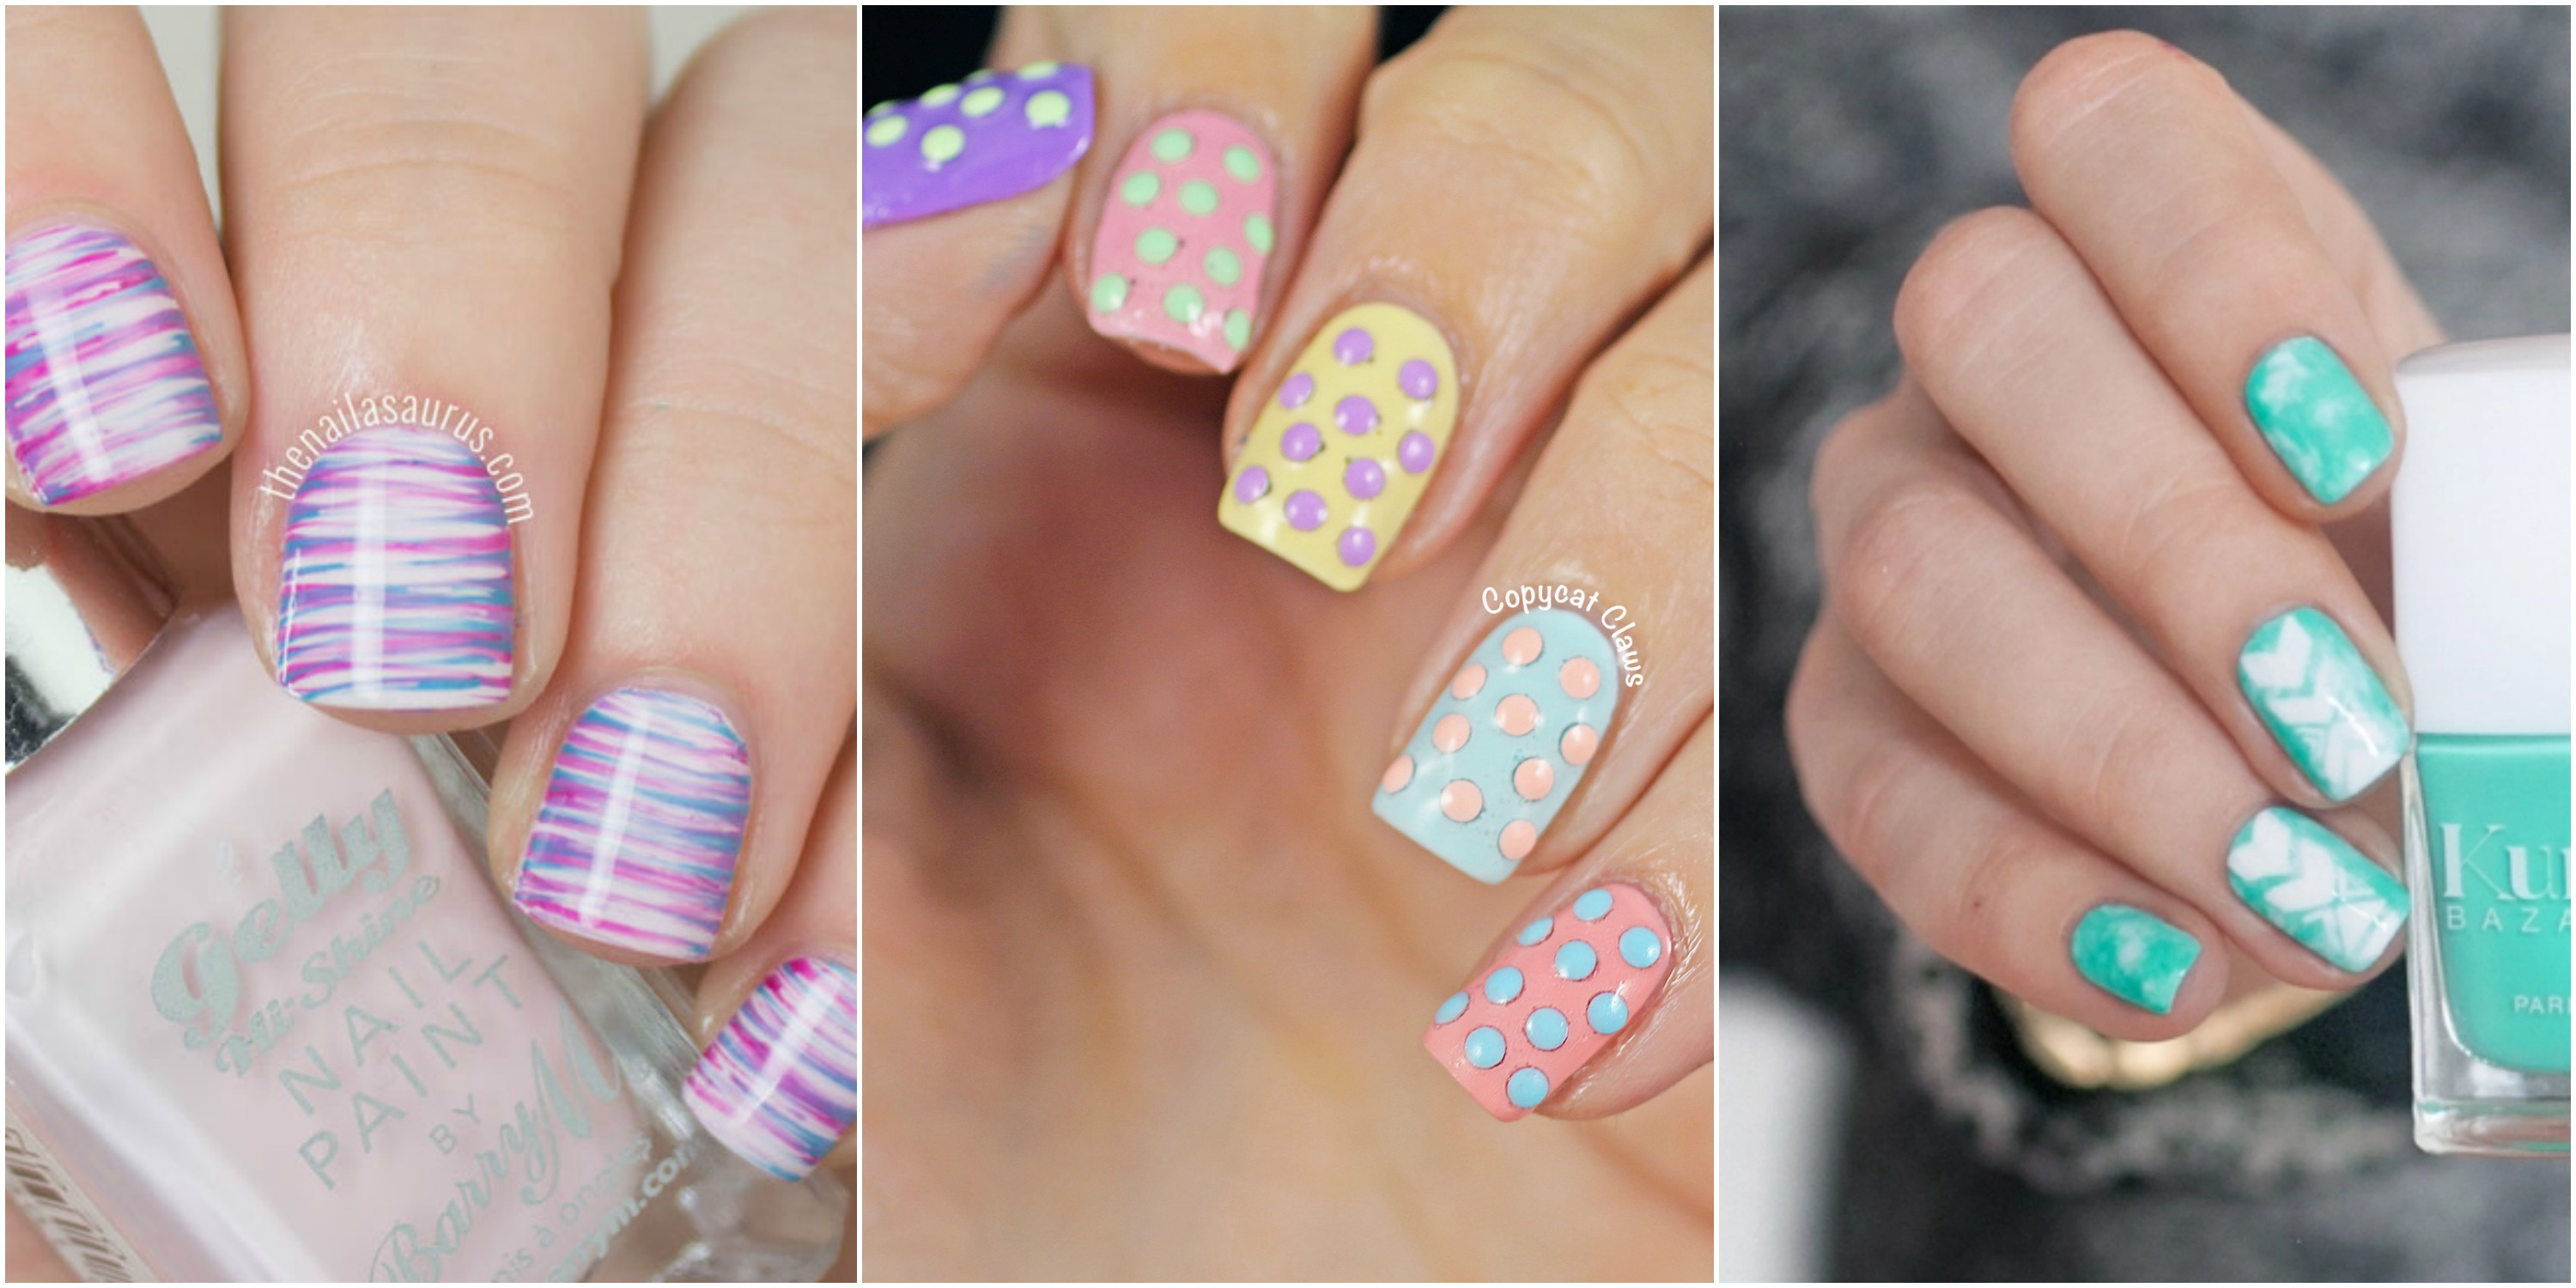 Nail Art Ideas: 21 Cute Easter Nail Designs